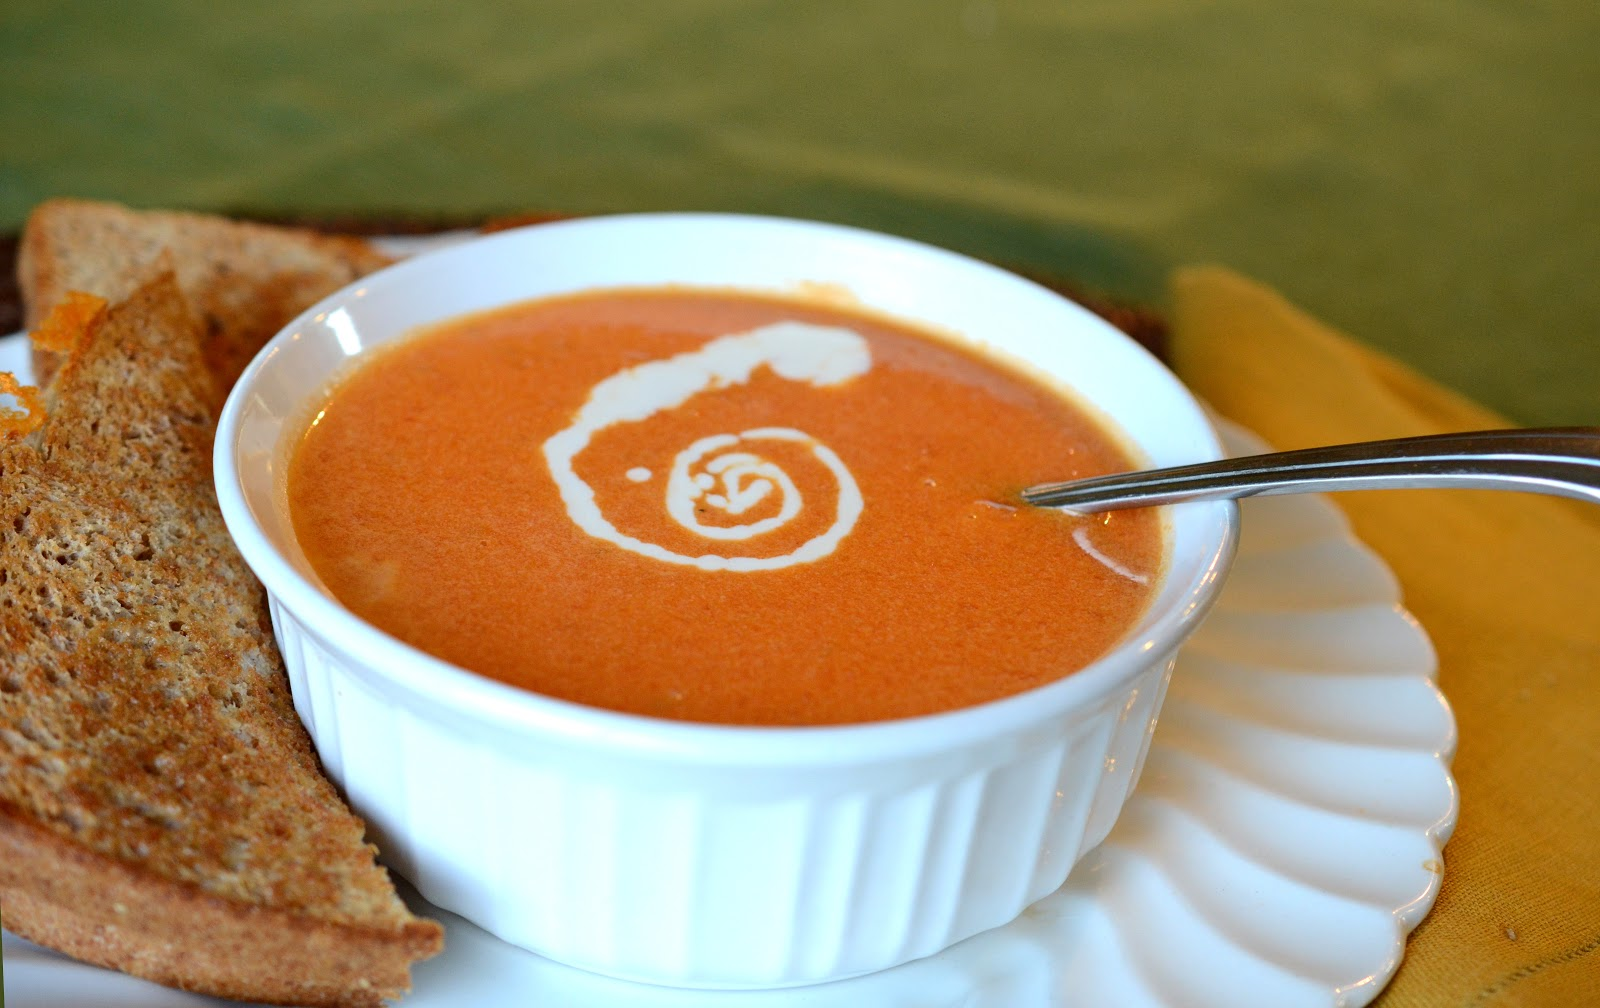 tomato soup cre a m of tomato soup easy tomato and basil soup healthy ...